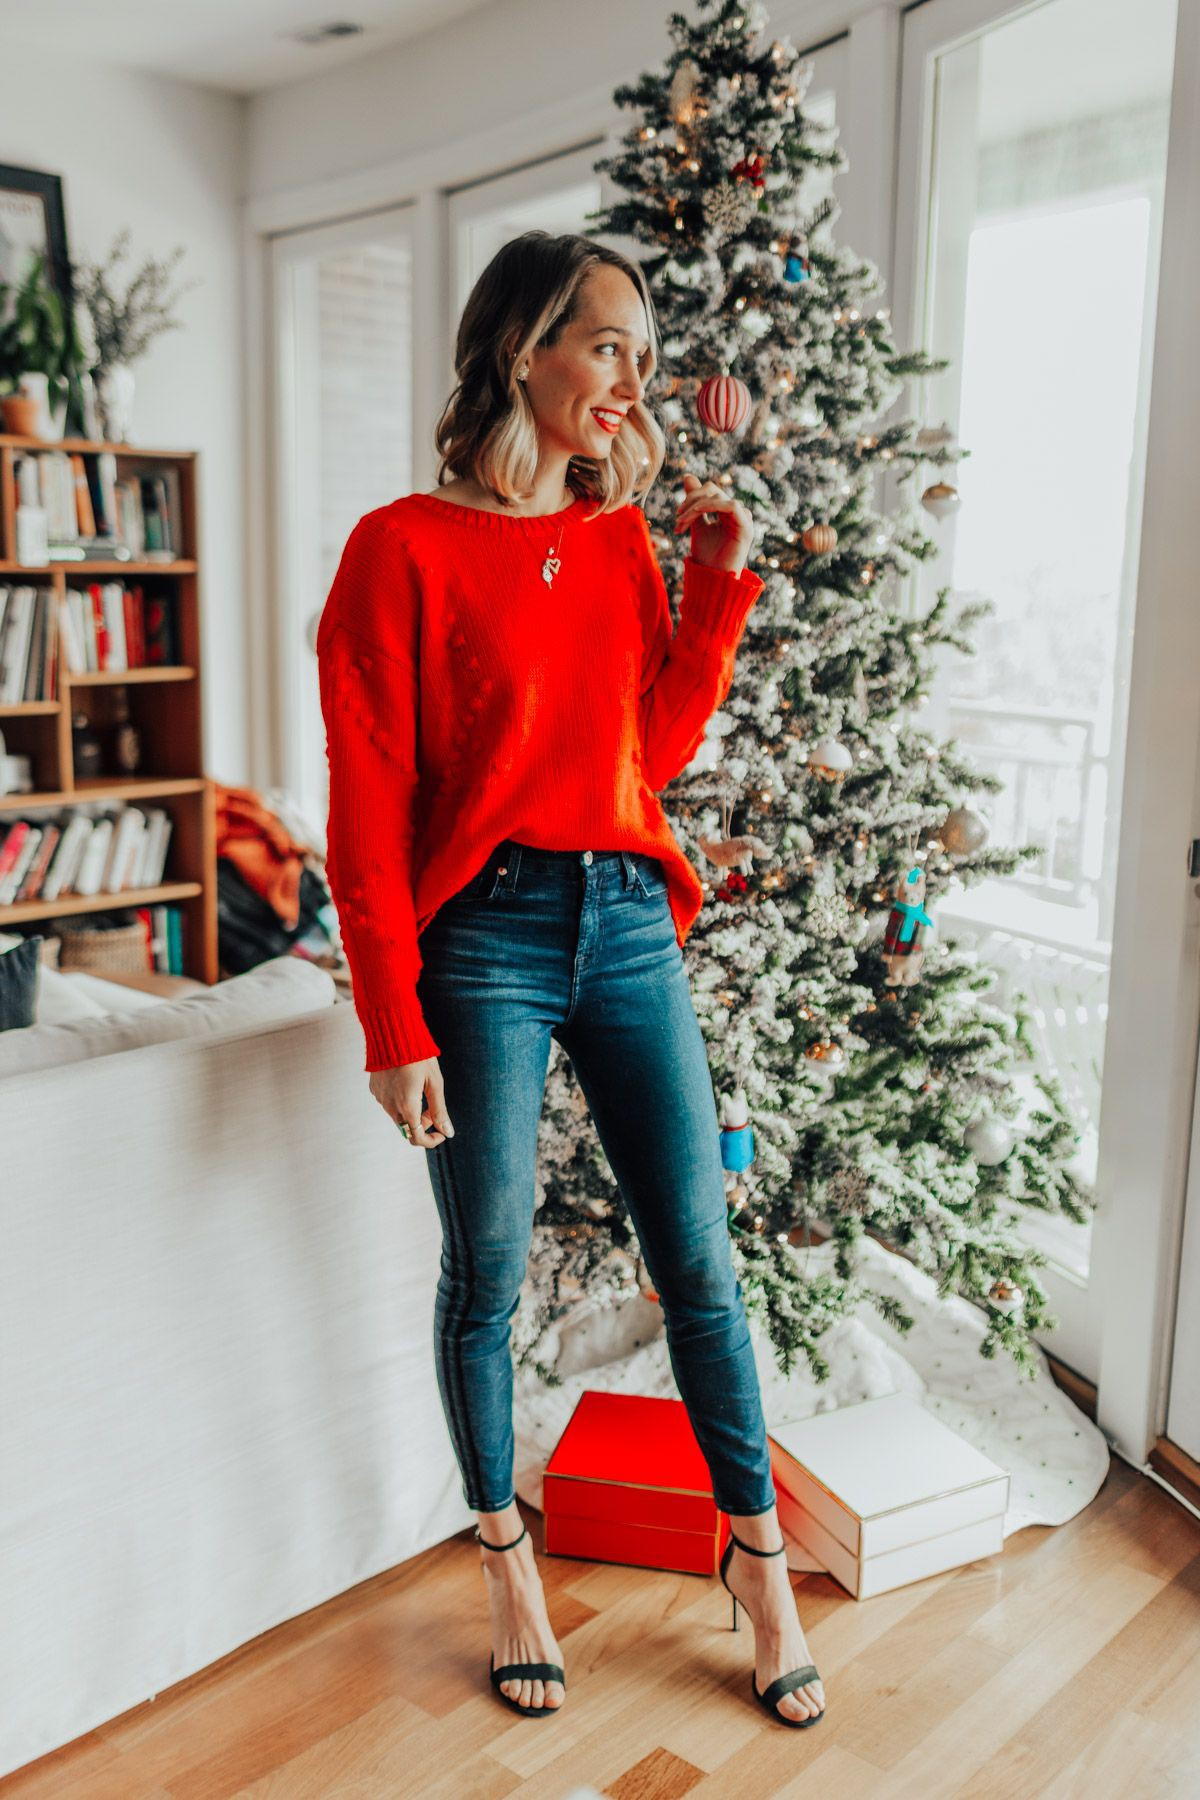 Paris type style christmas 2019 outfits, BEST! Christmas Party